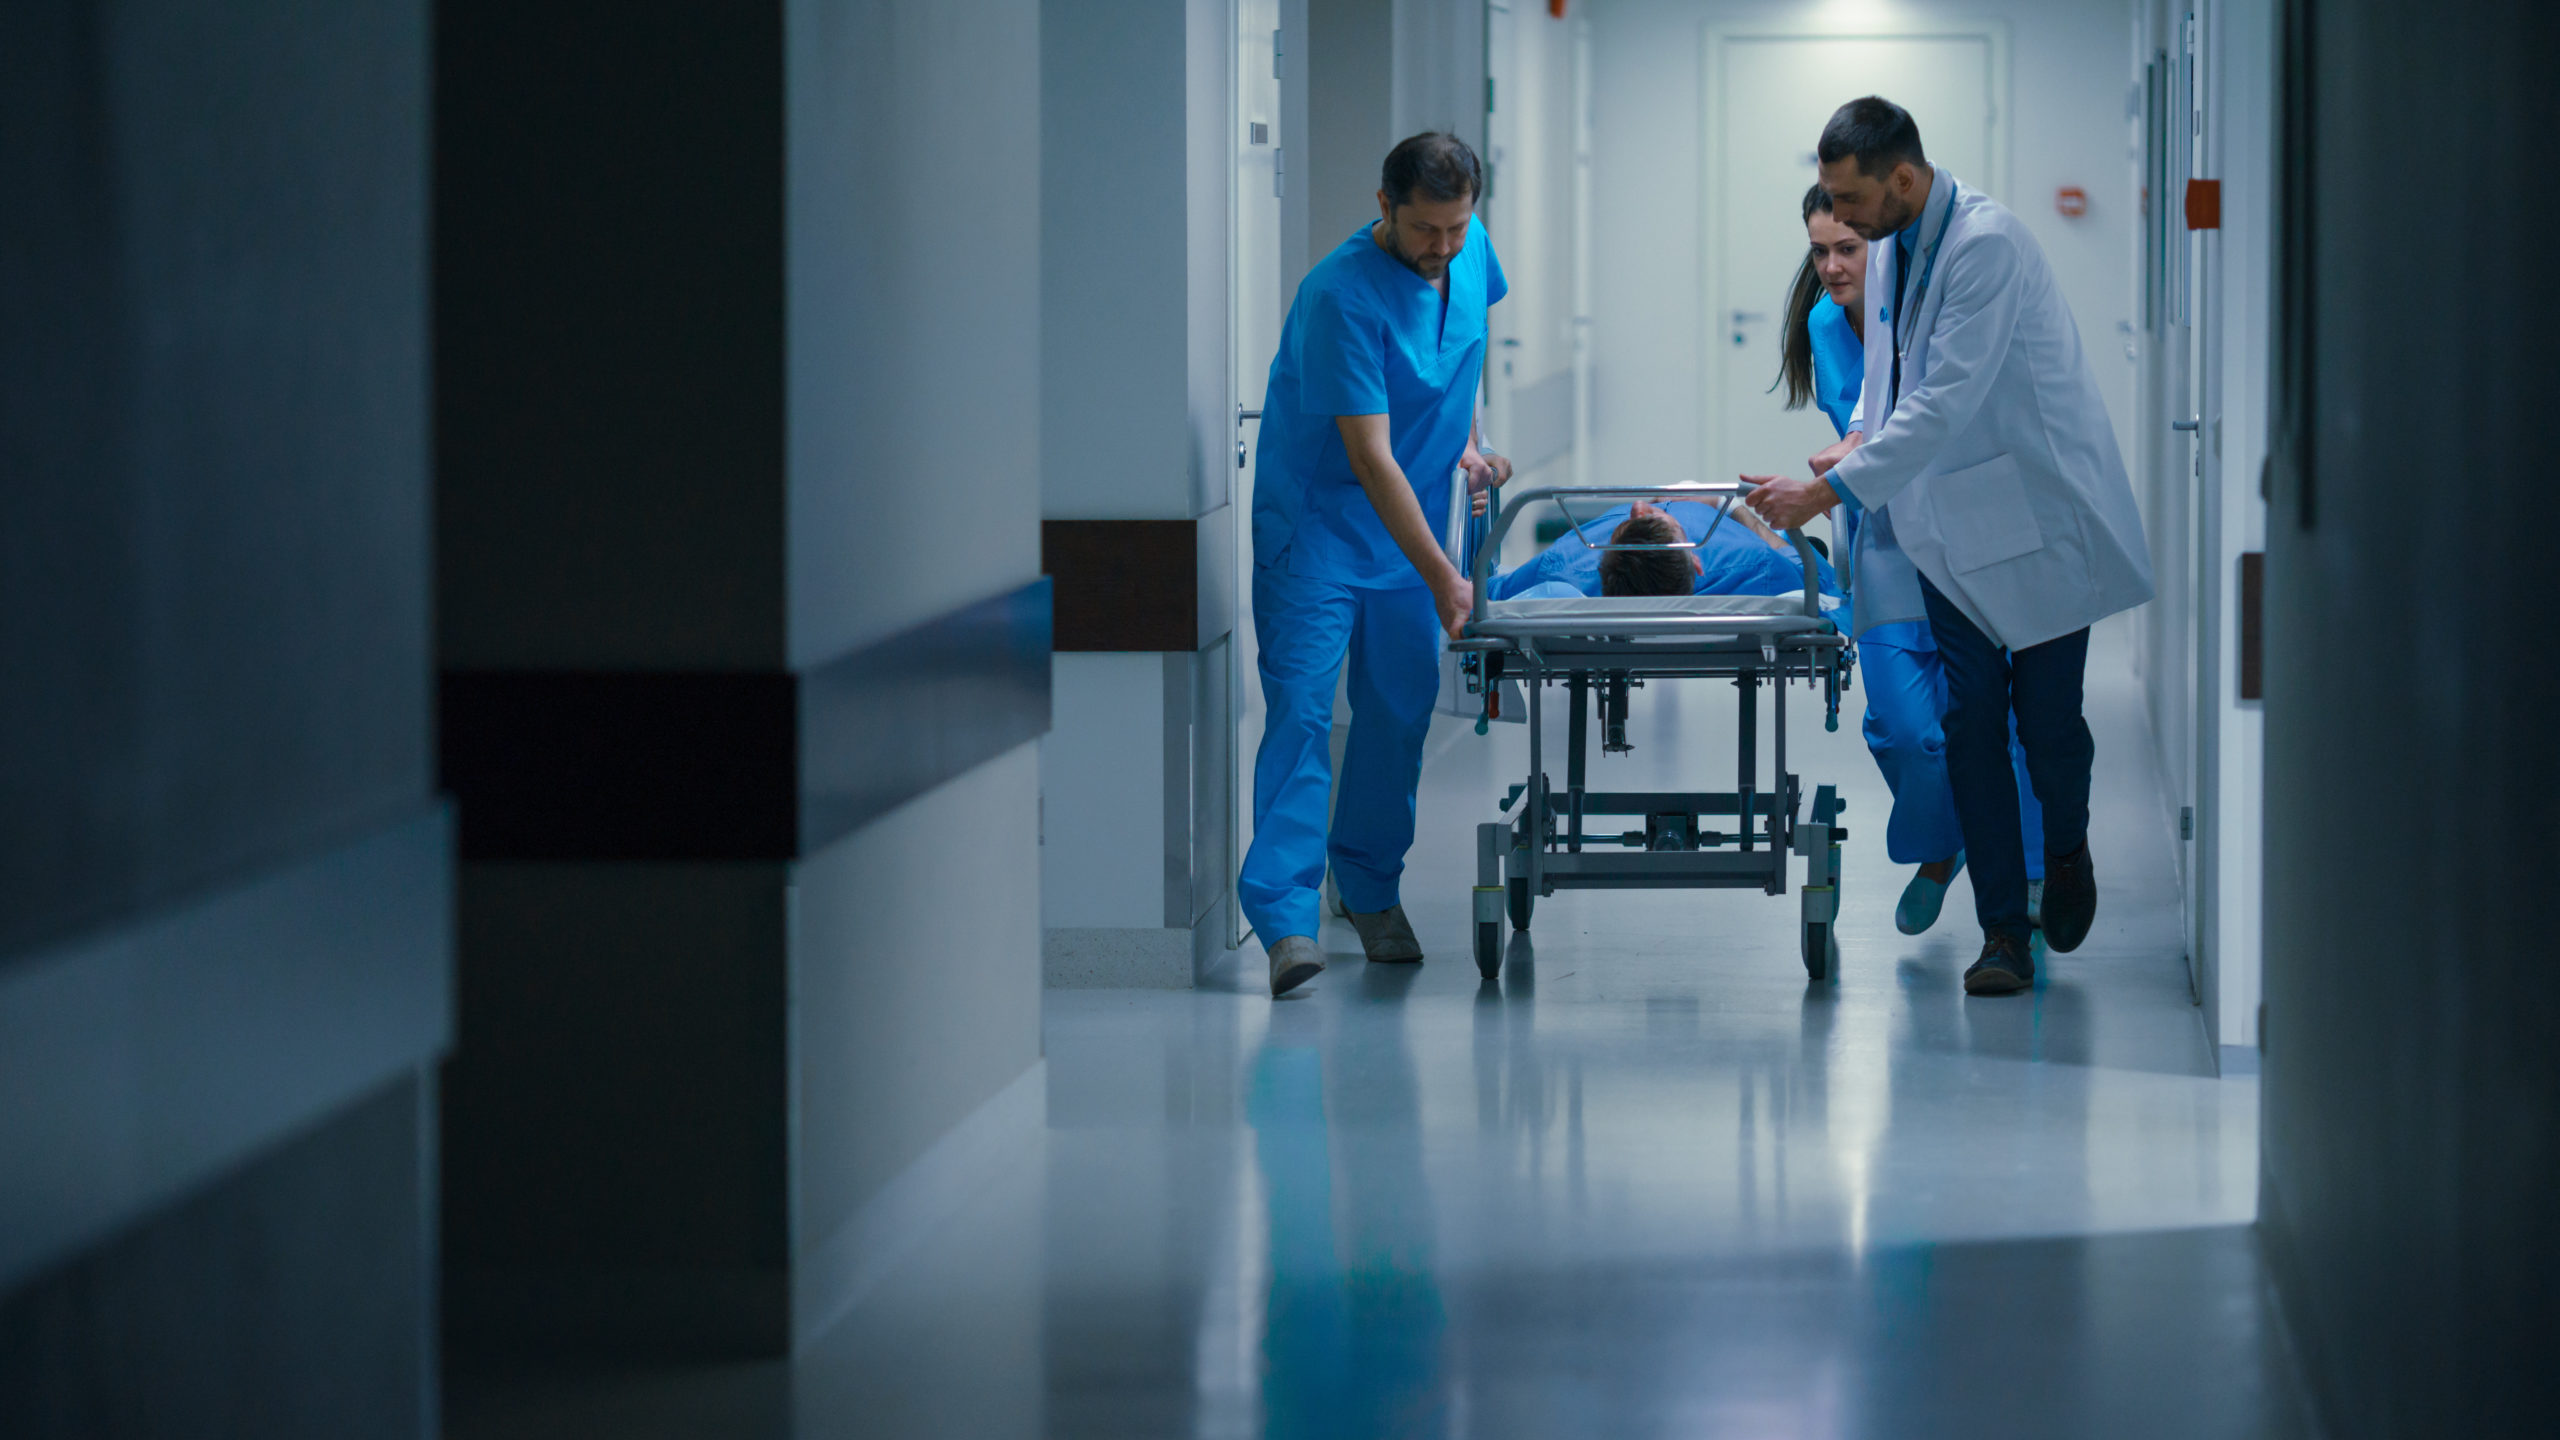 Emergency Department: Doctors, Nurses and Paramedics Push Gurney / Stretcher with Seriously Injured Patient towards the Operating Room. Bright Modern Hospital with Professional Staff Saving Lives.